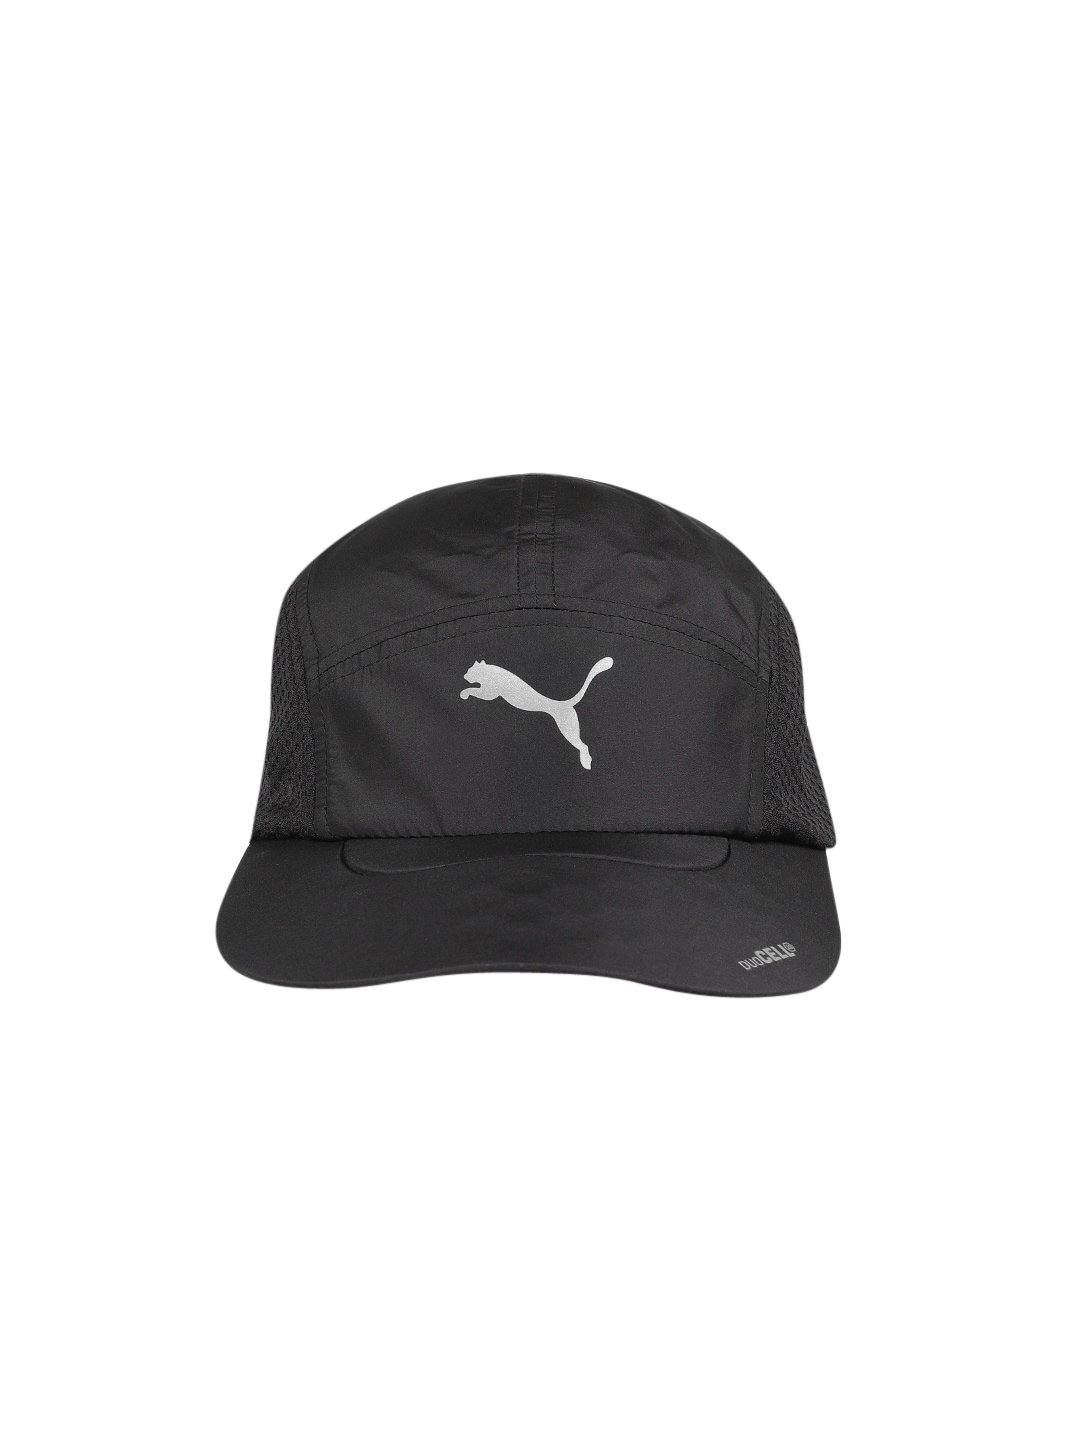 e9791890f7c Puma Caps - Buy Puma Caps Online in India